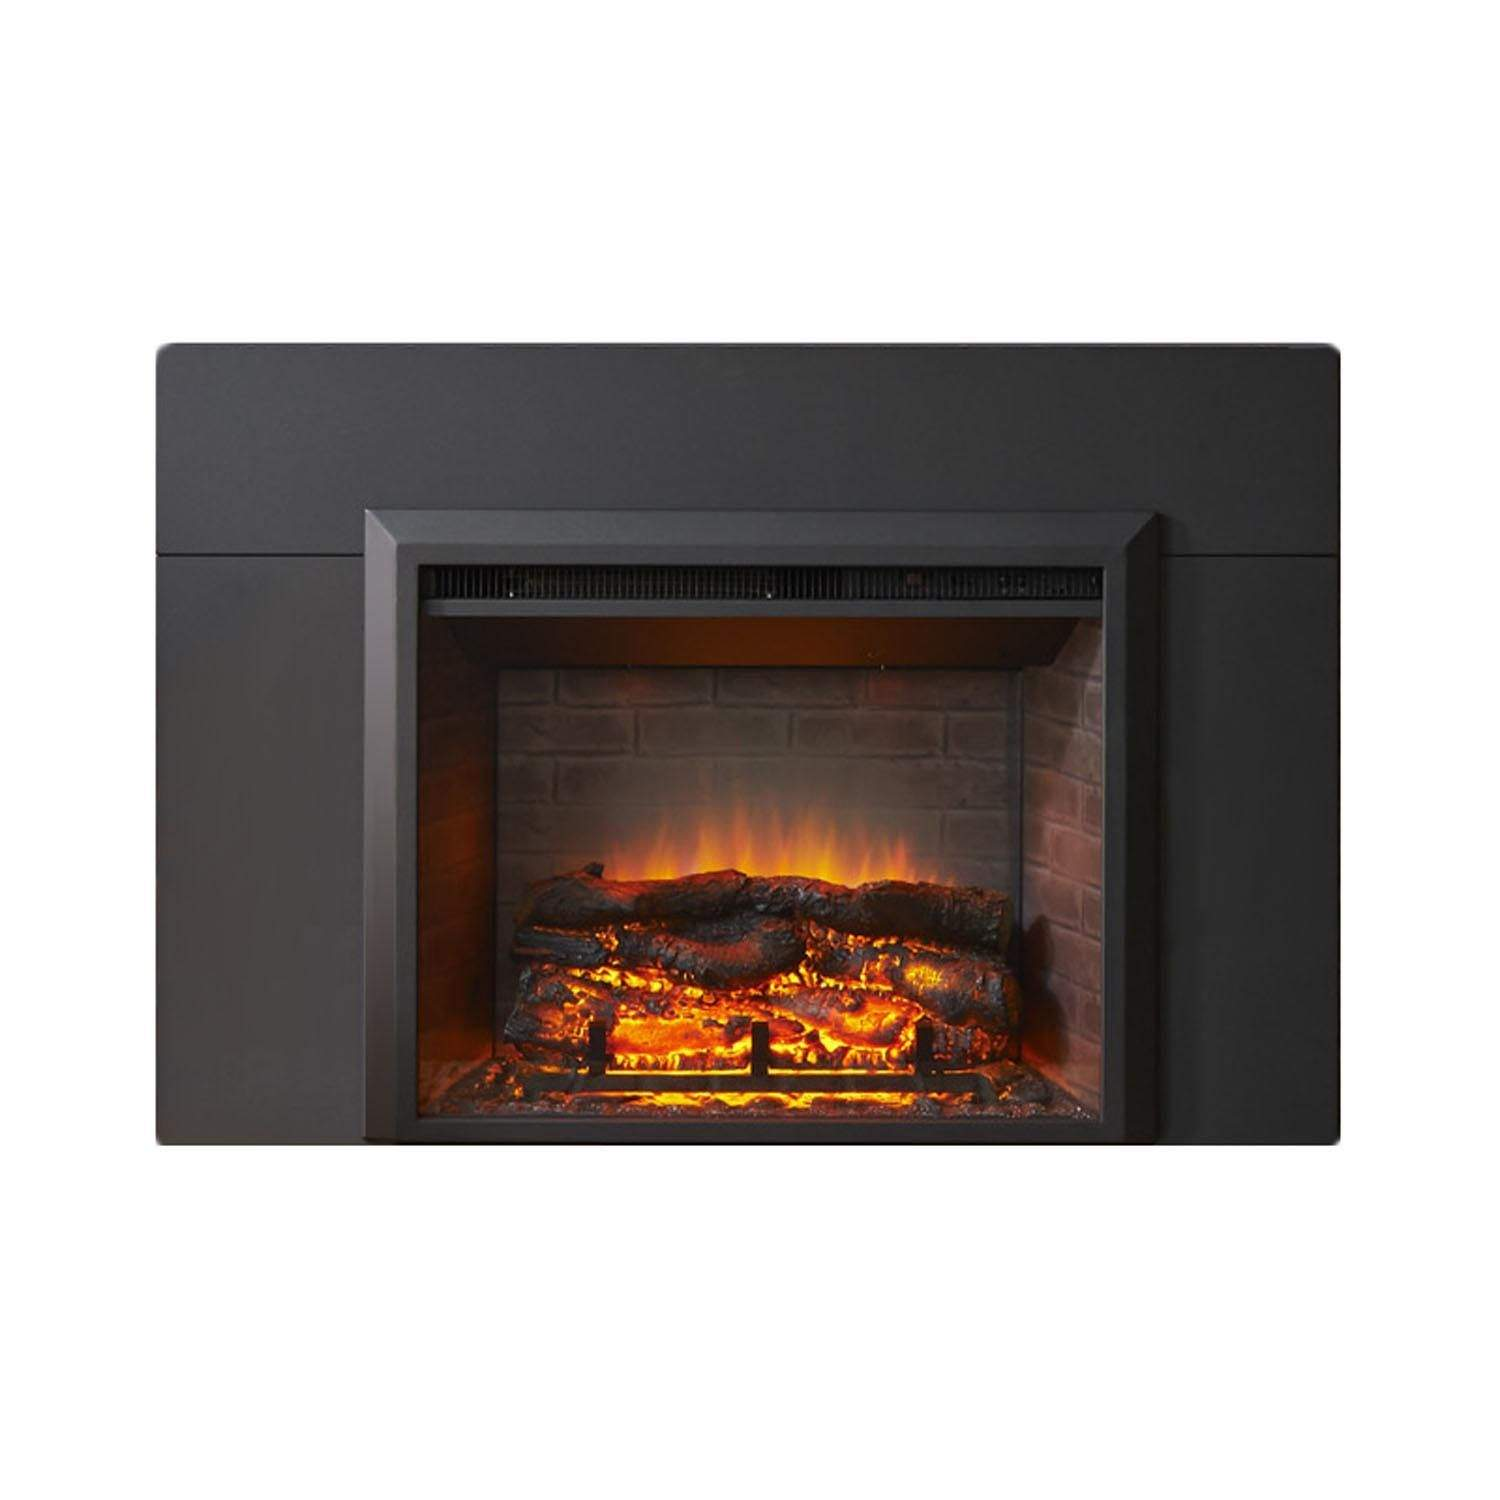 Greatco Gallery Series Insert Electric Fireplace 42 Inch Surround New